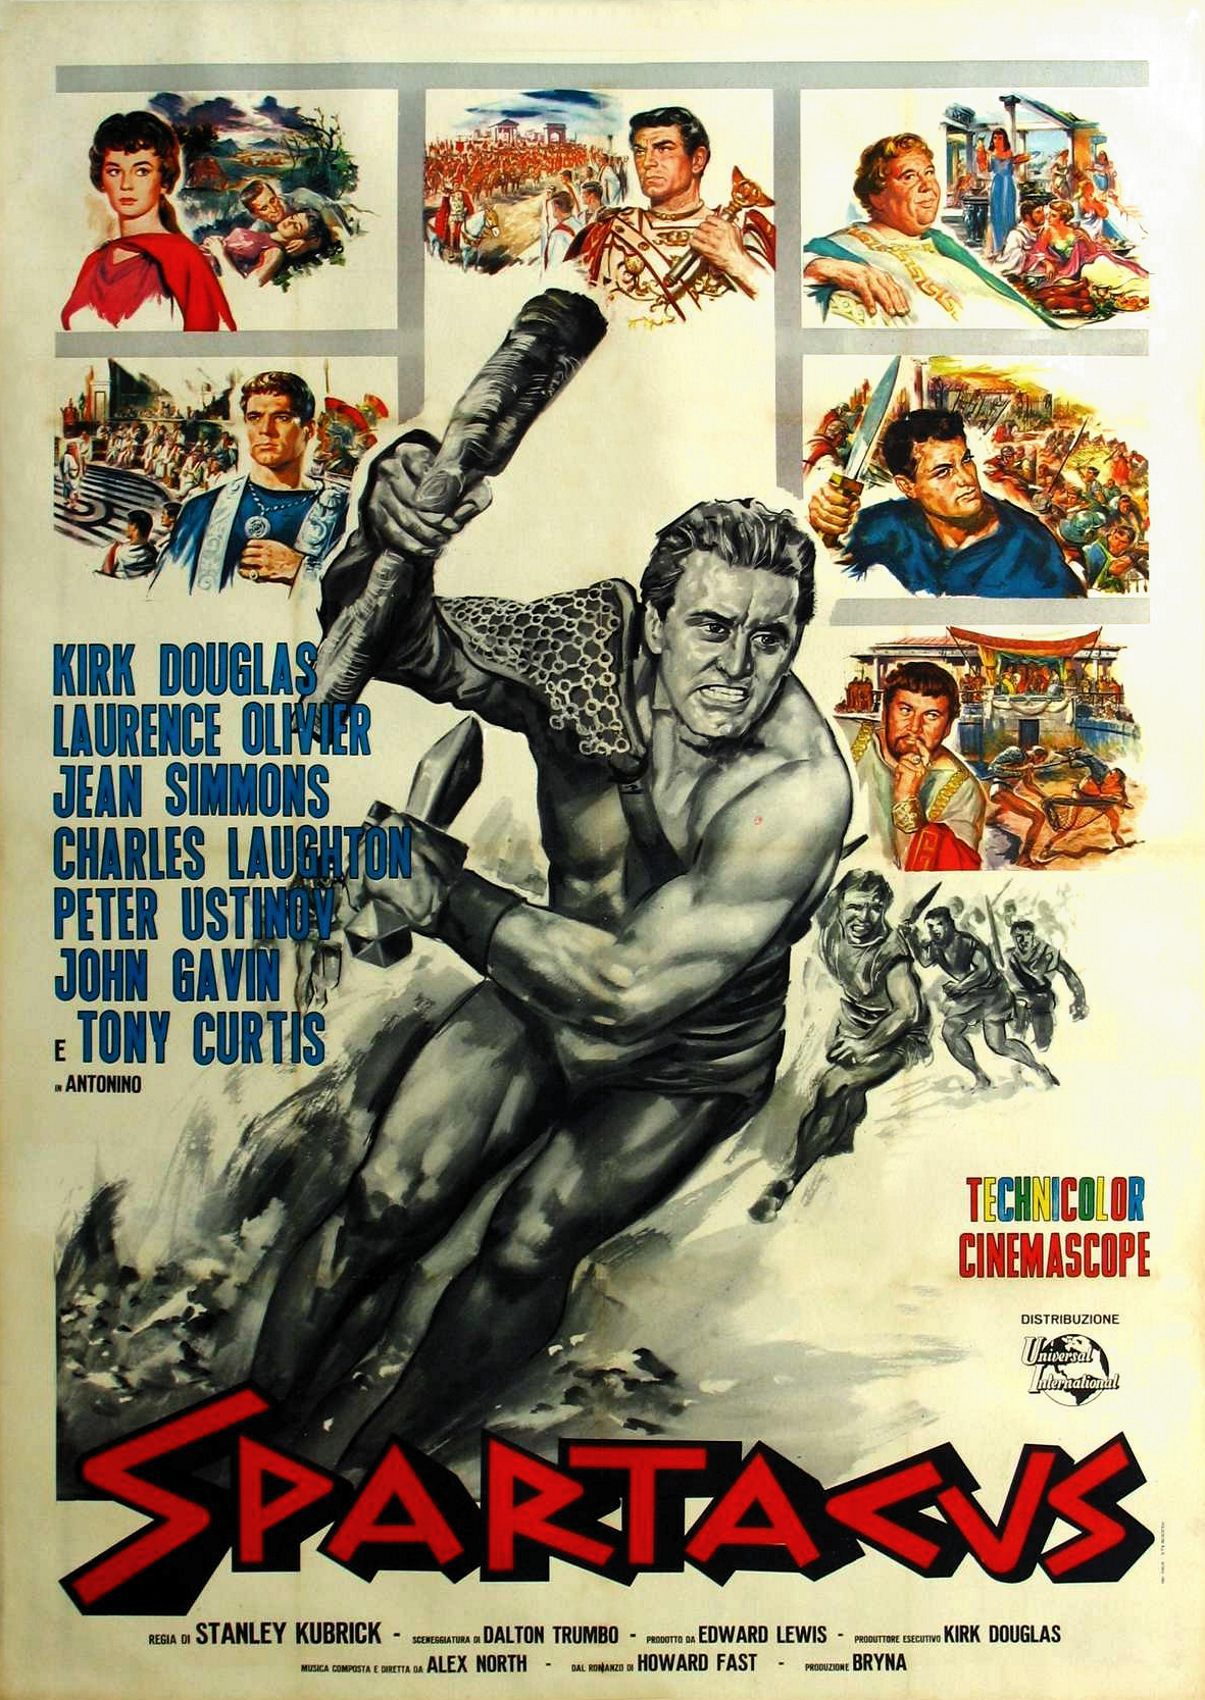 Laurence olivier spartacus quotes - Spartacus 1959 Kirk Douglas Laurence Olivier Jean Simmons Charles Laughton